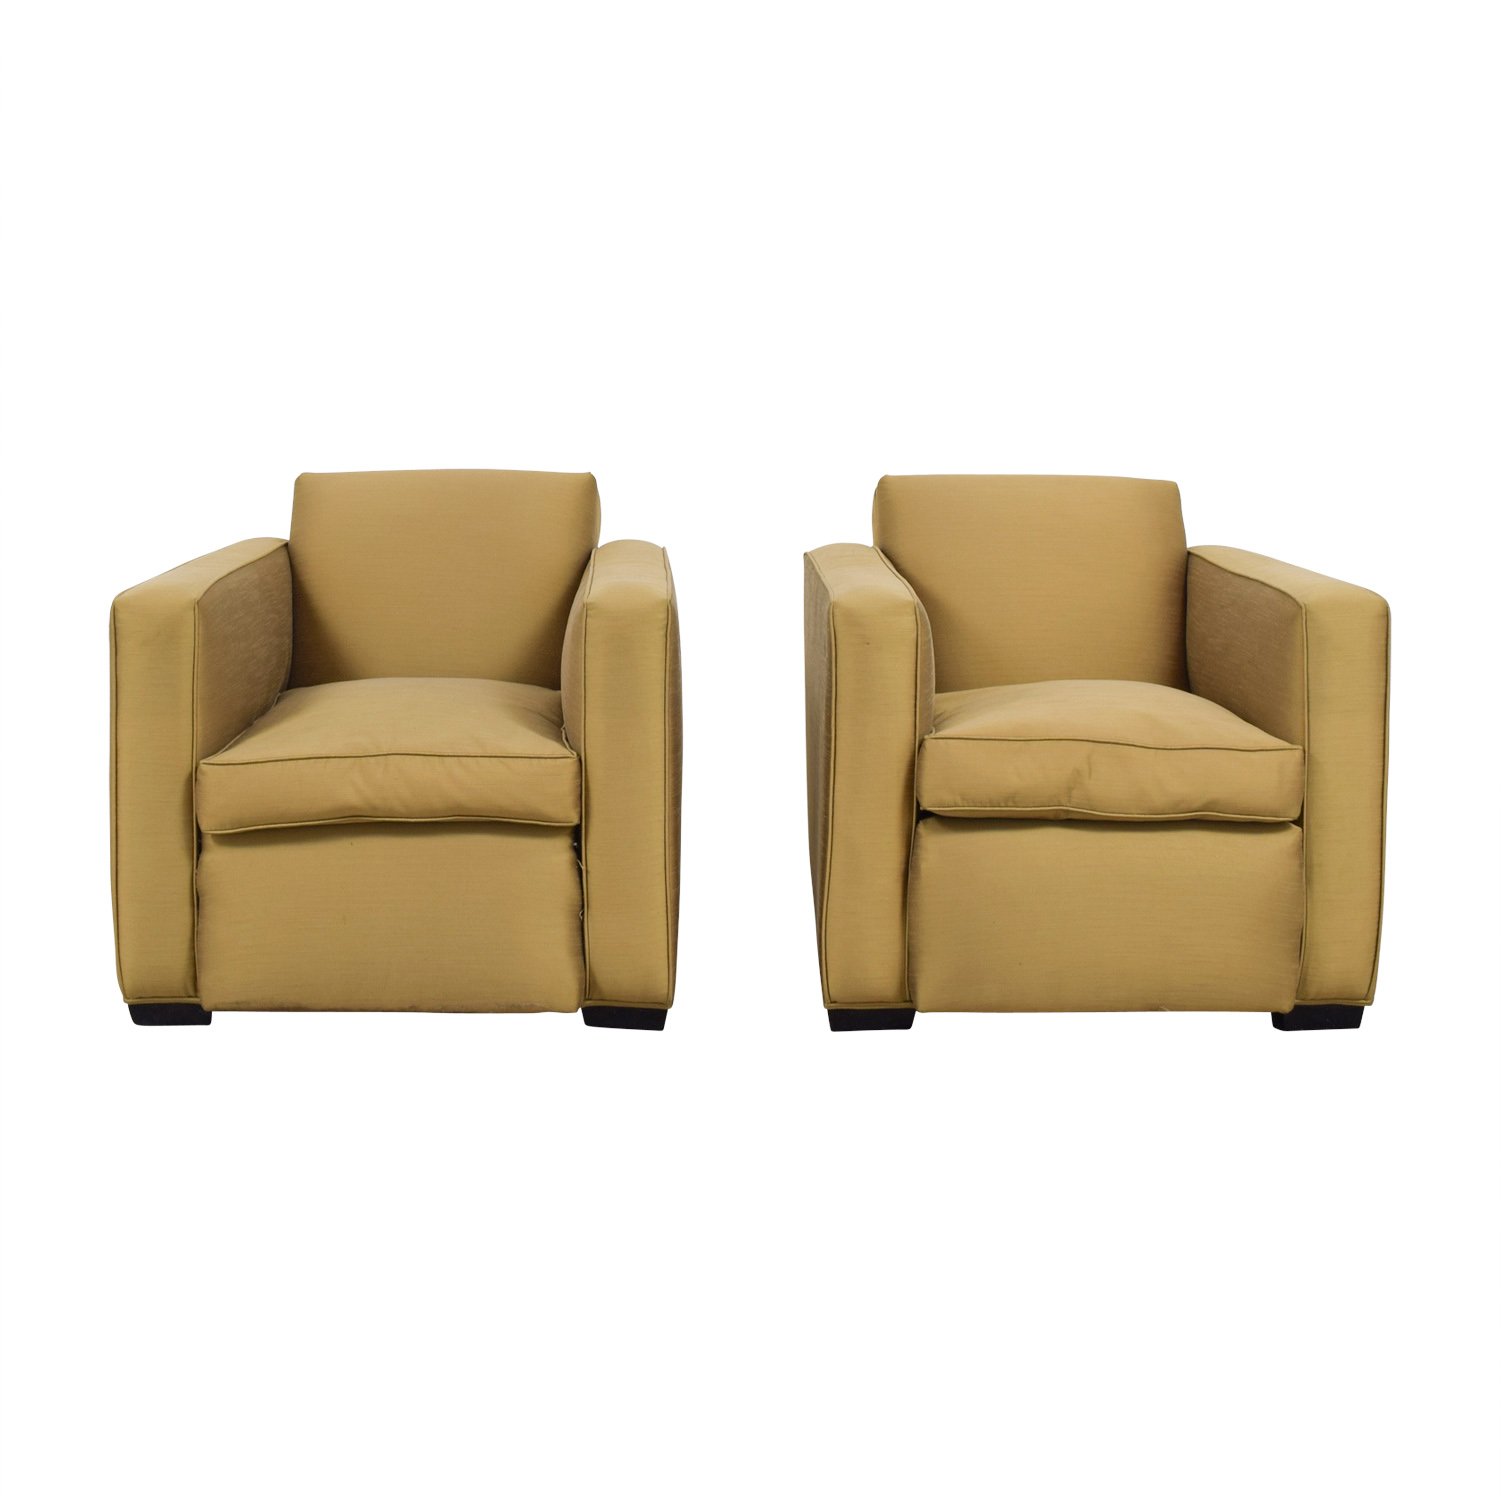 shop Paul J Sommerville Design Inc Gold Accent Chairs Paul J Sommerville Design Inc Sofas